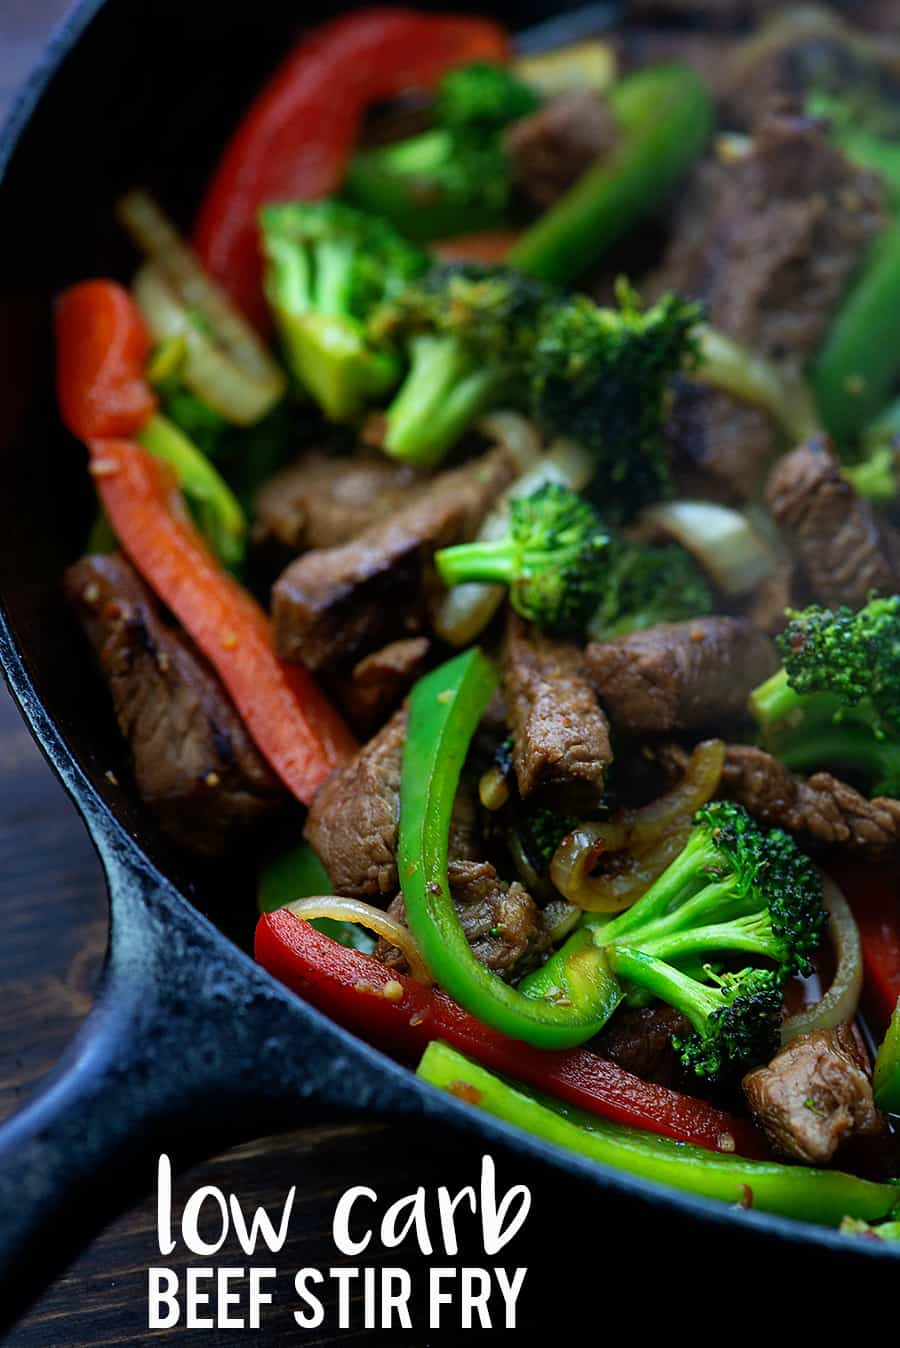 Keto Asian Broccoli Recipes